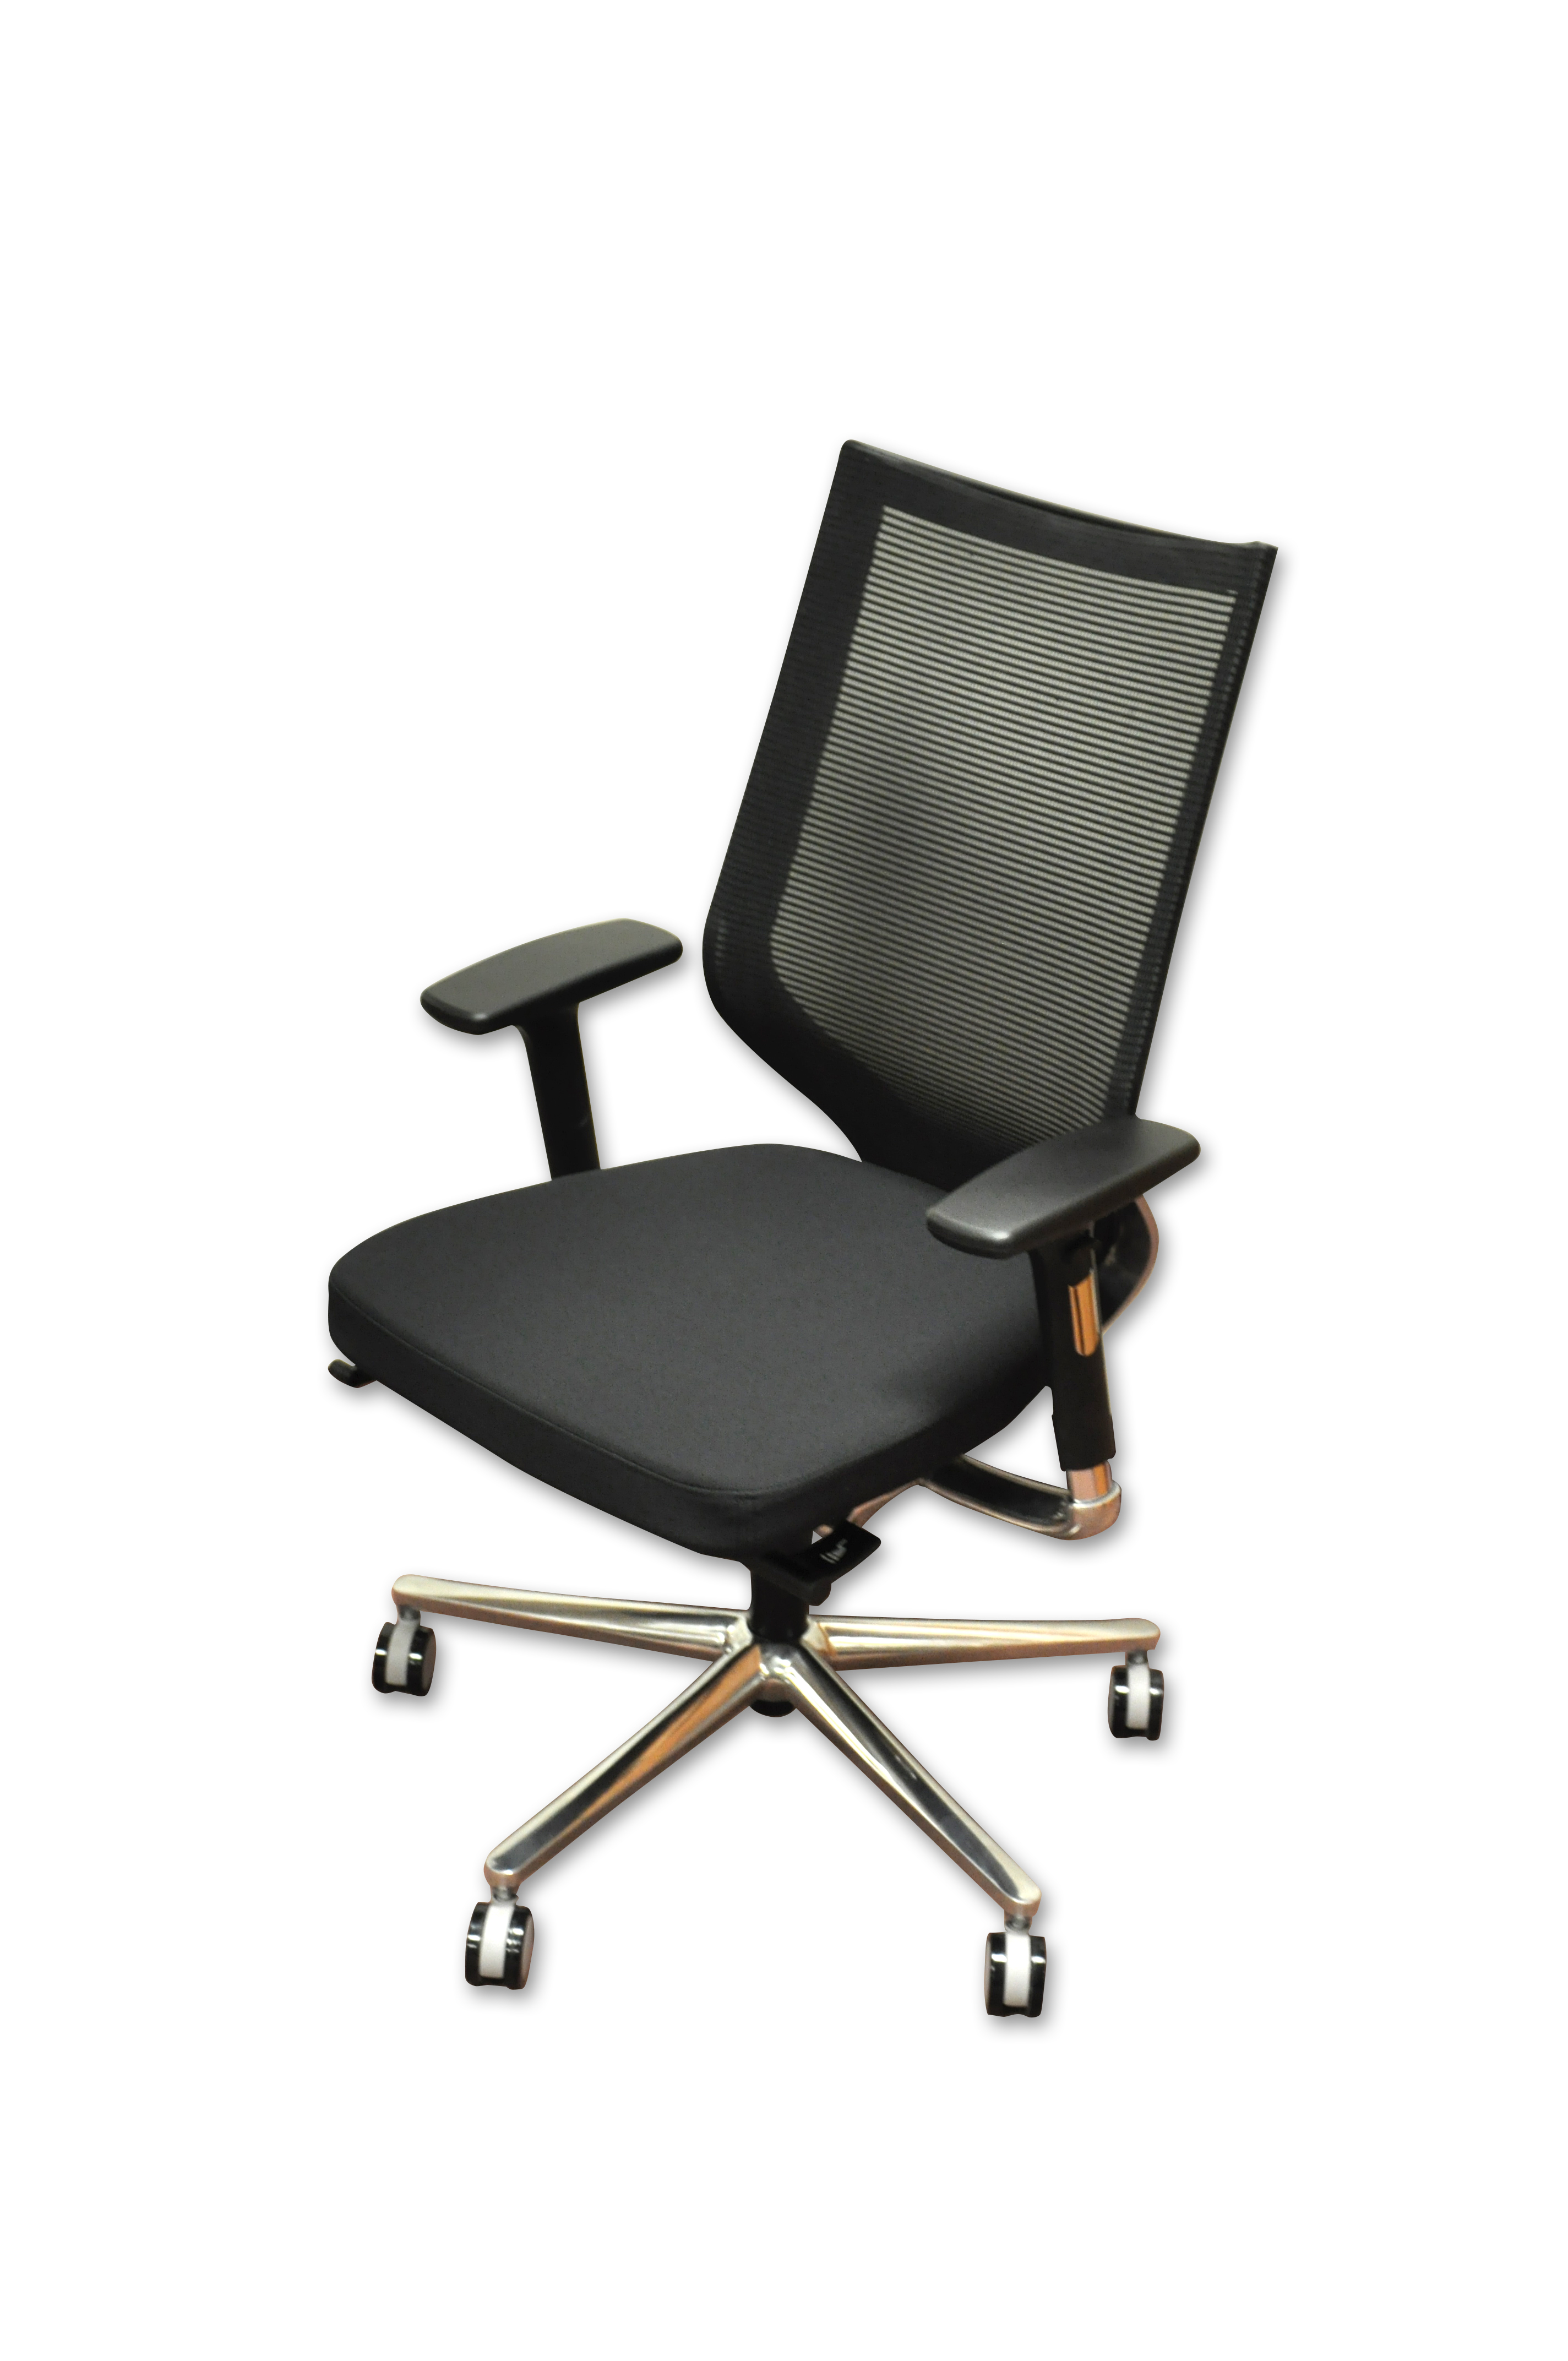 B 20028 besides Linens U2013 Baltimore U0027s Best in addition Walmart Weekly Ad 9112015 9262015 further Black Leather Desk Chair Whole further Evenflo Car Seat Harness Diagram. on evenflo high chair walmart